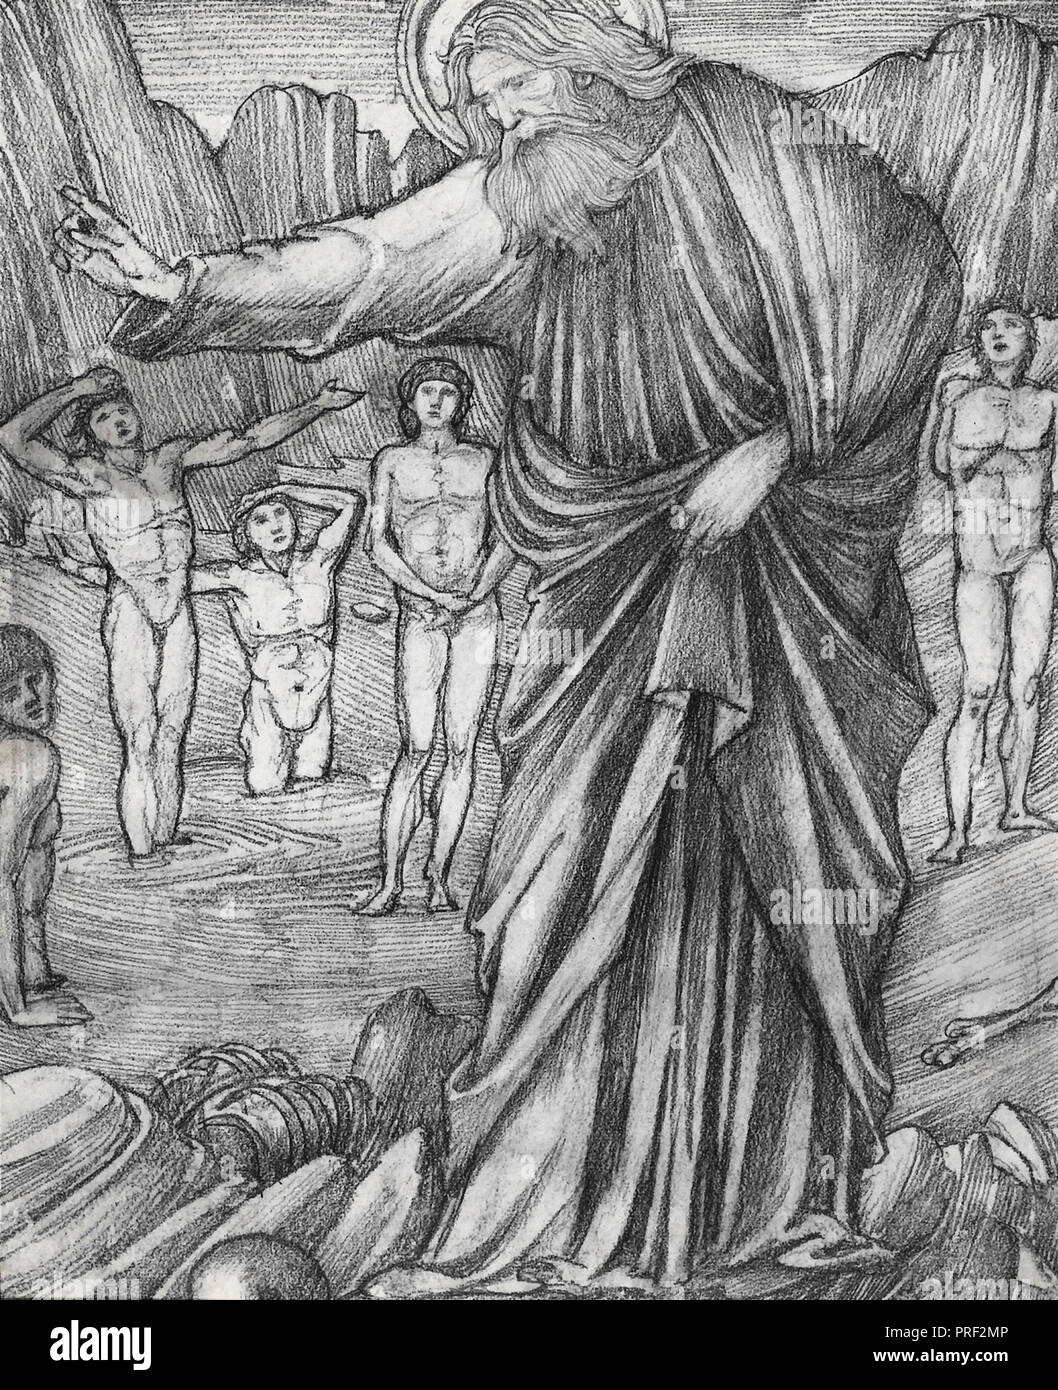 Burne-Jones  Edward Coley - Ezekiel in the Valley of Dry Bones 1 (Study for a Stained Glass Window) - Stock Image